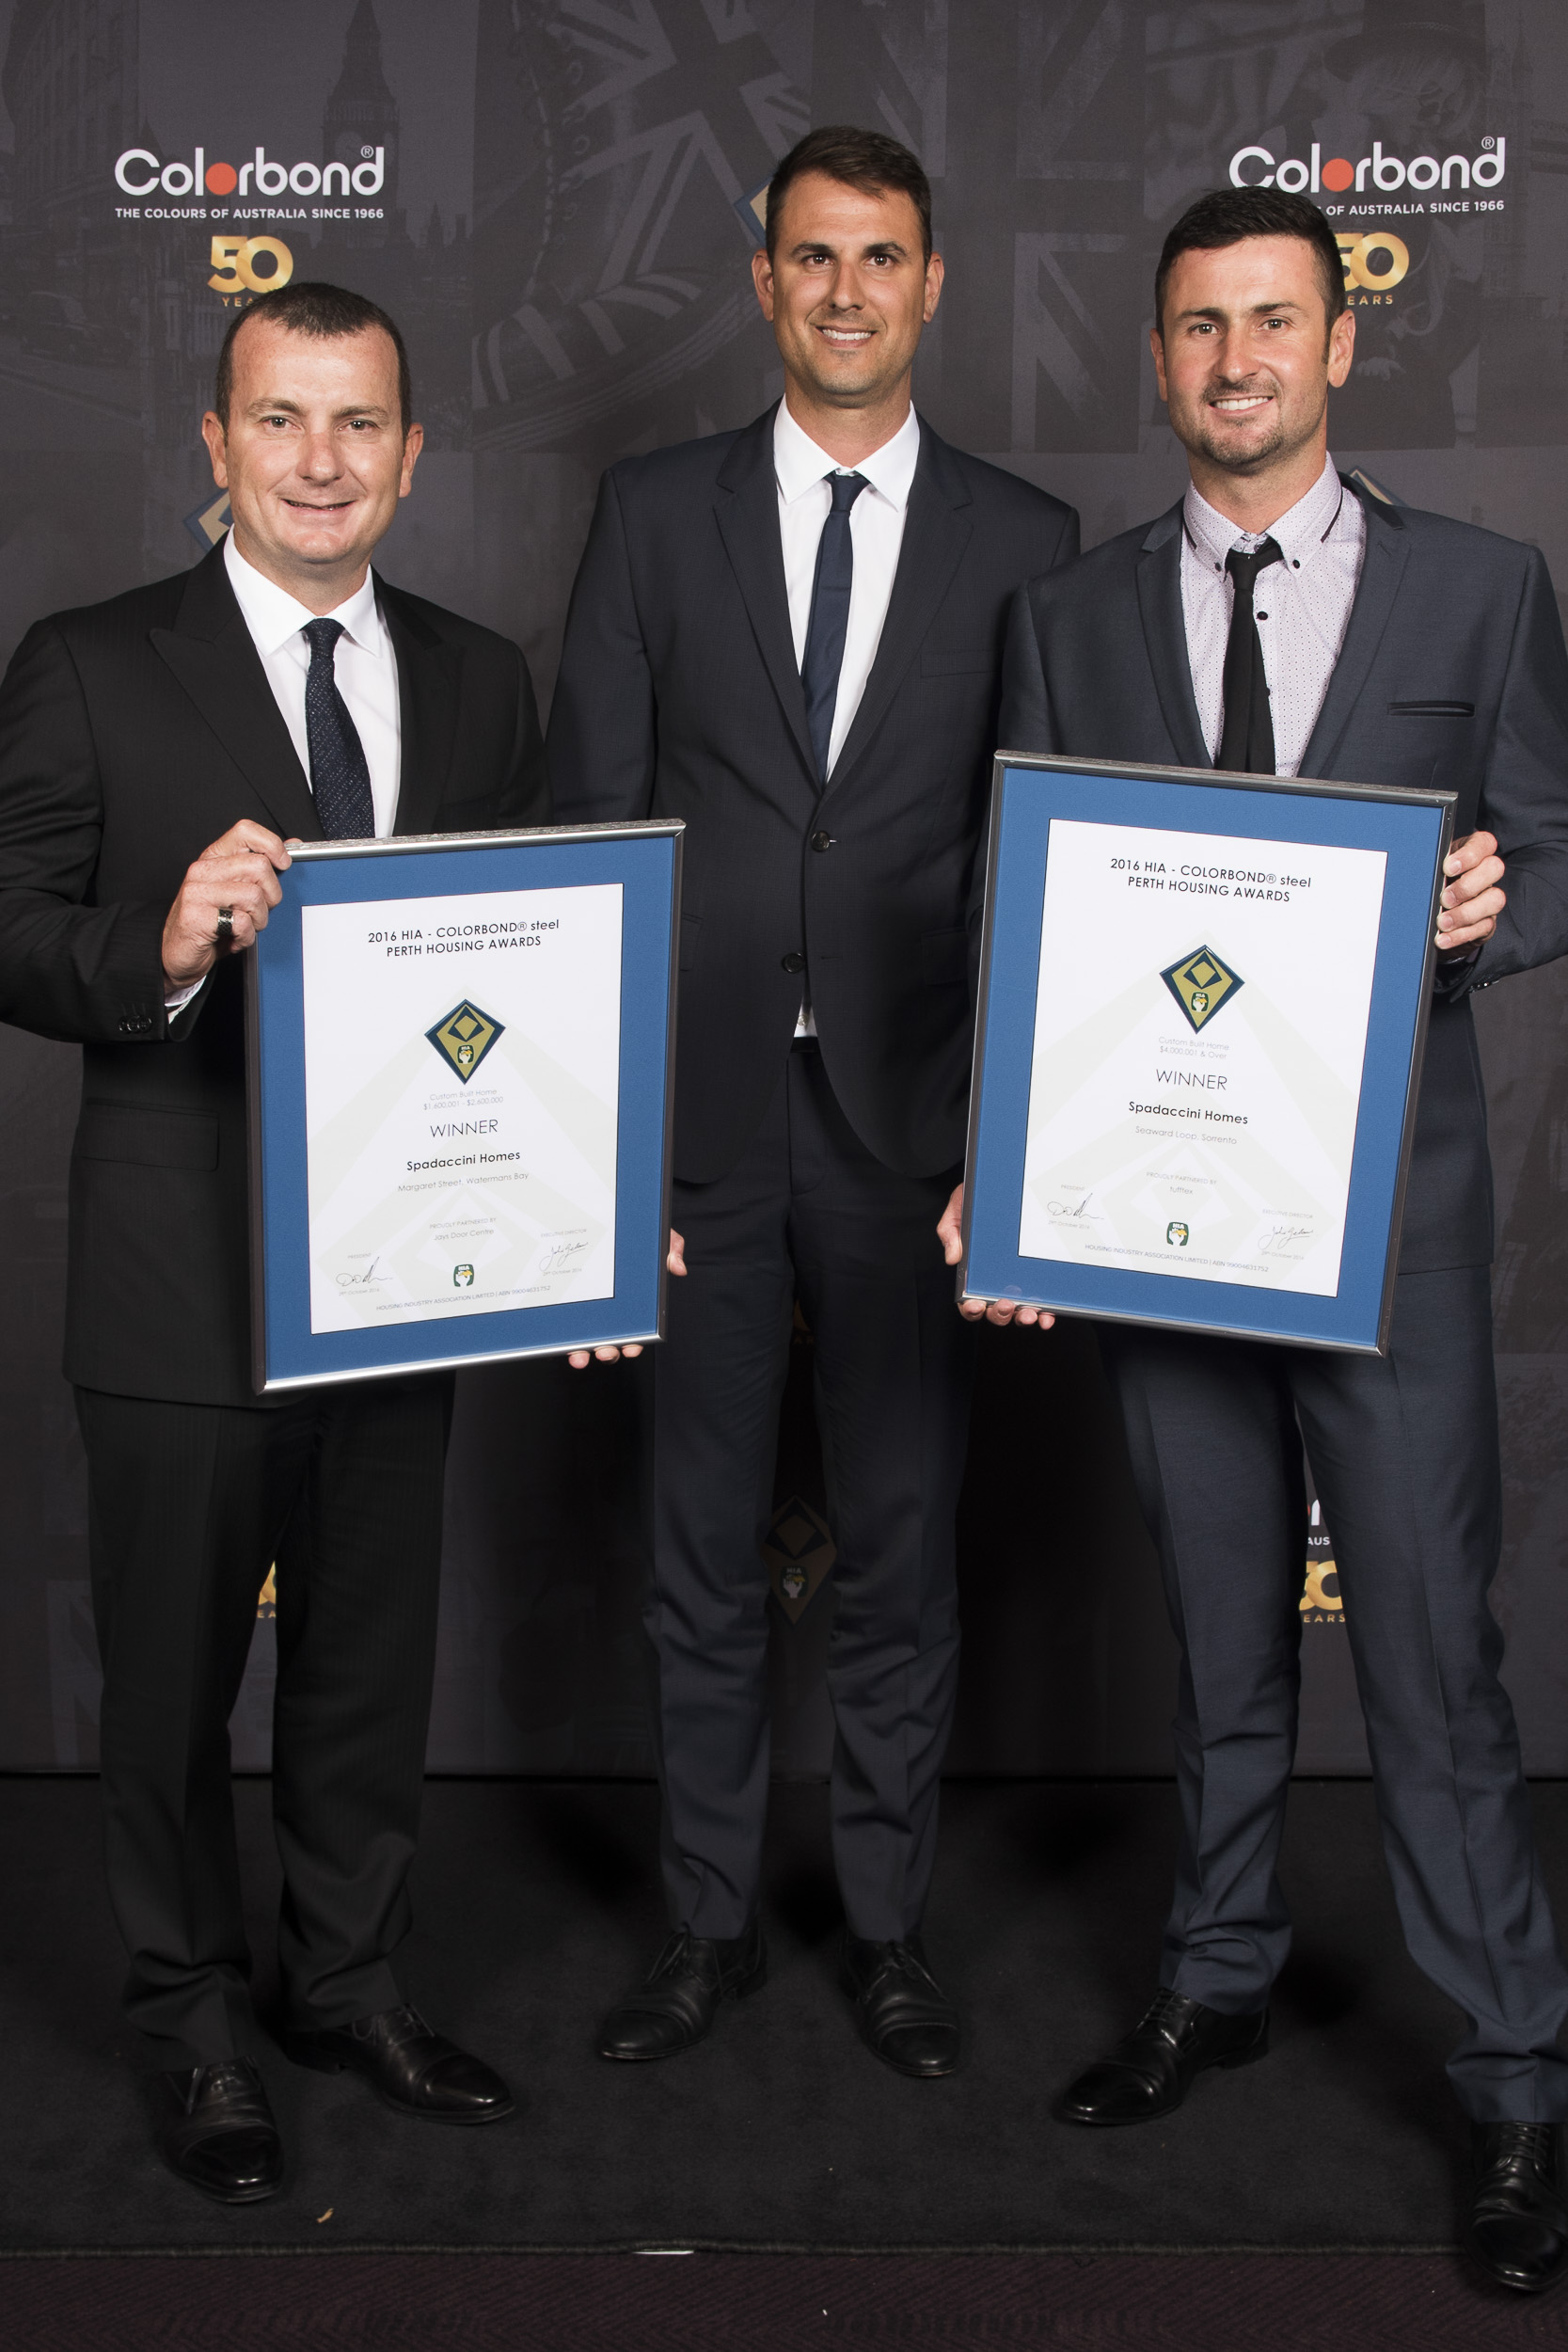 243 Perth Housing Awards HIA Awards 2016.jpg